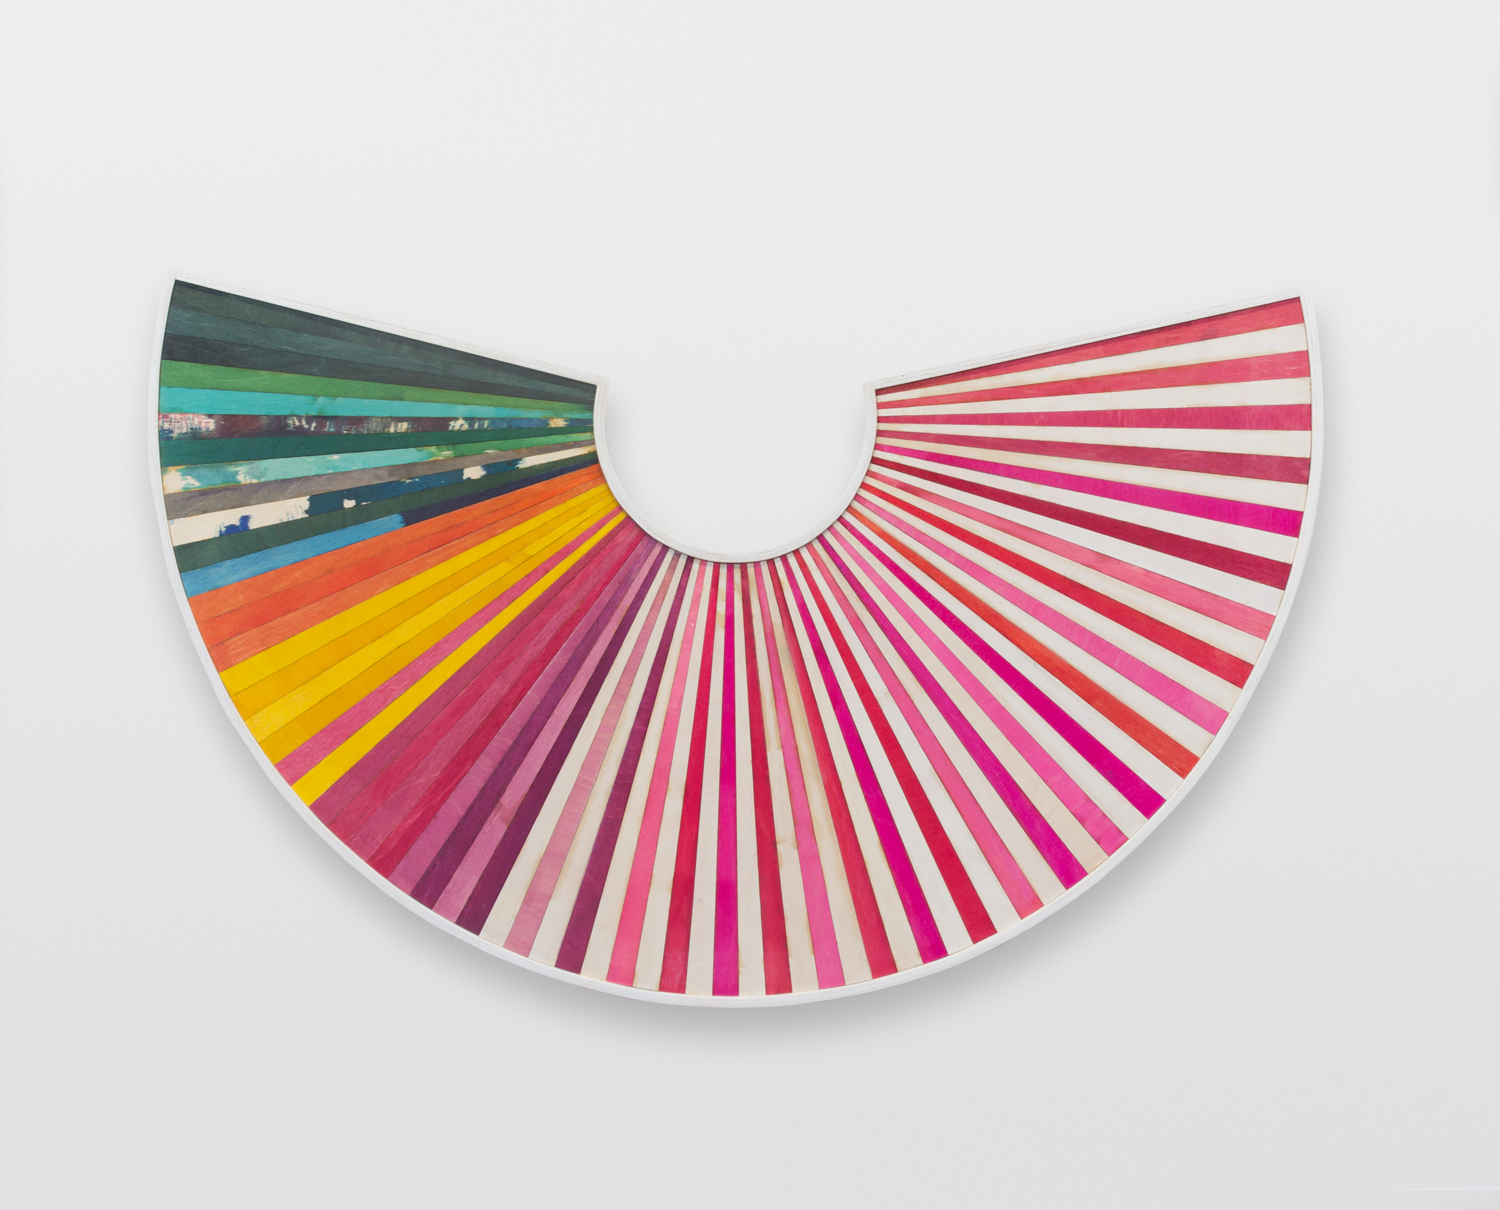 Dann Gunn, Fanning No. 4 2014, dye, polyurethane on plywood, 21 x 32.5 inches